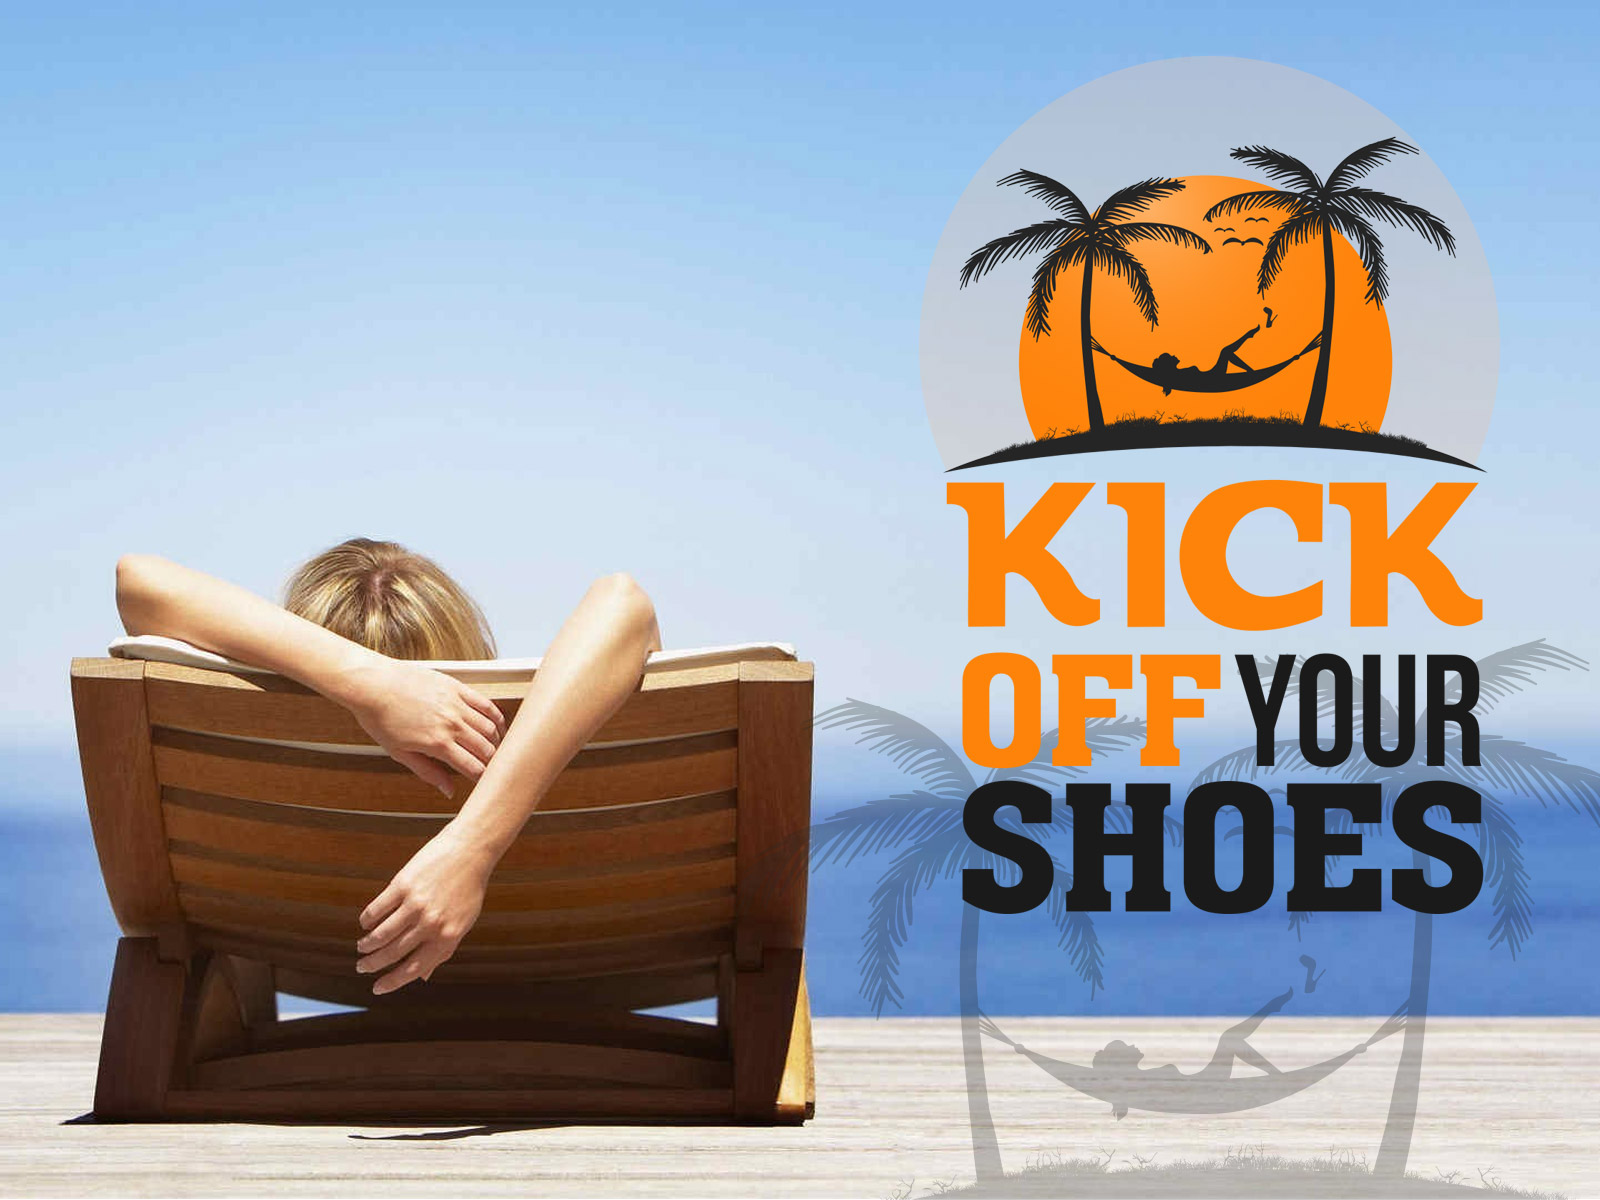 Logo Design by olii - Entry No. 27 in the Logo Design Contest New Logo Design for Kick Off Your Shoes.